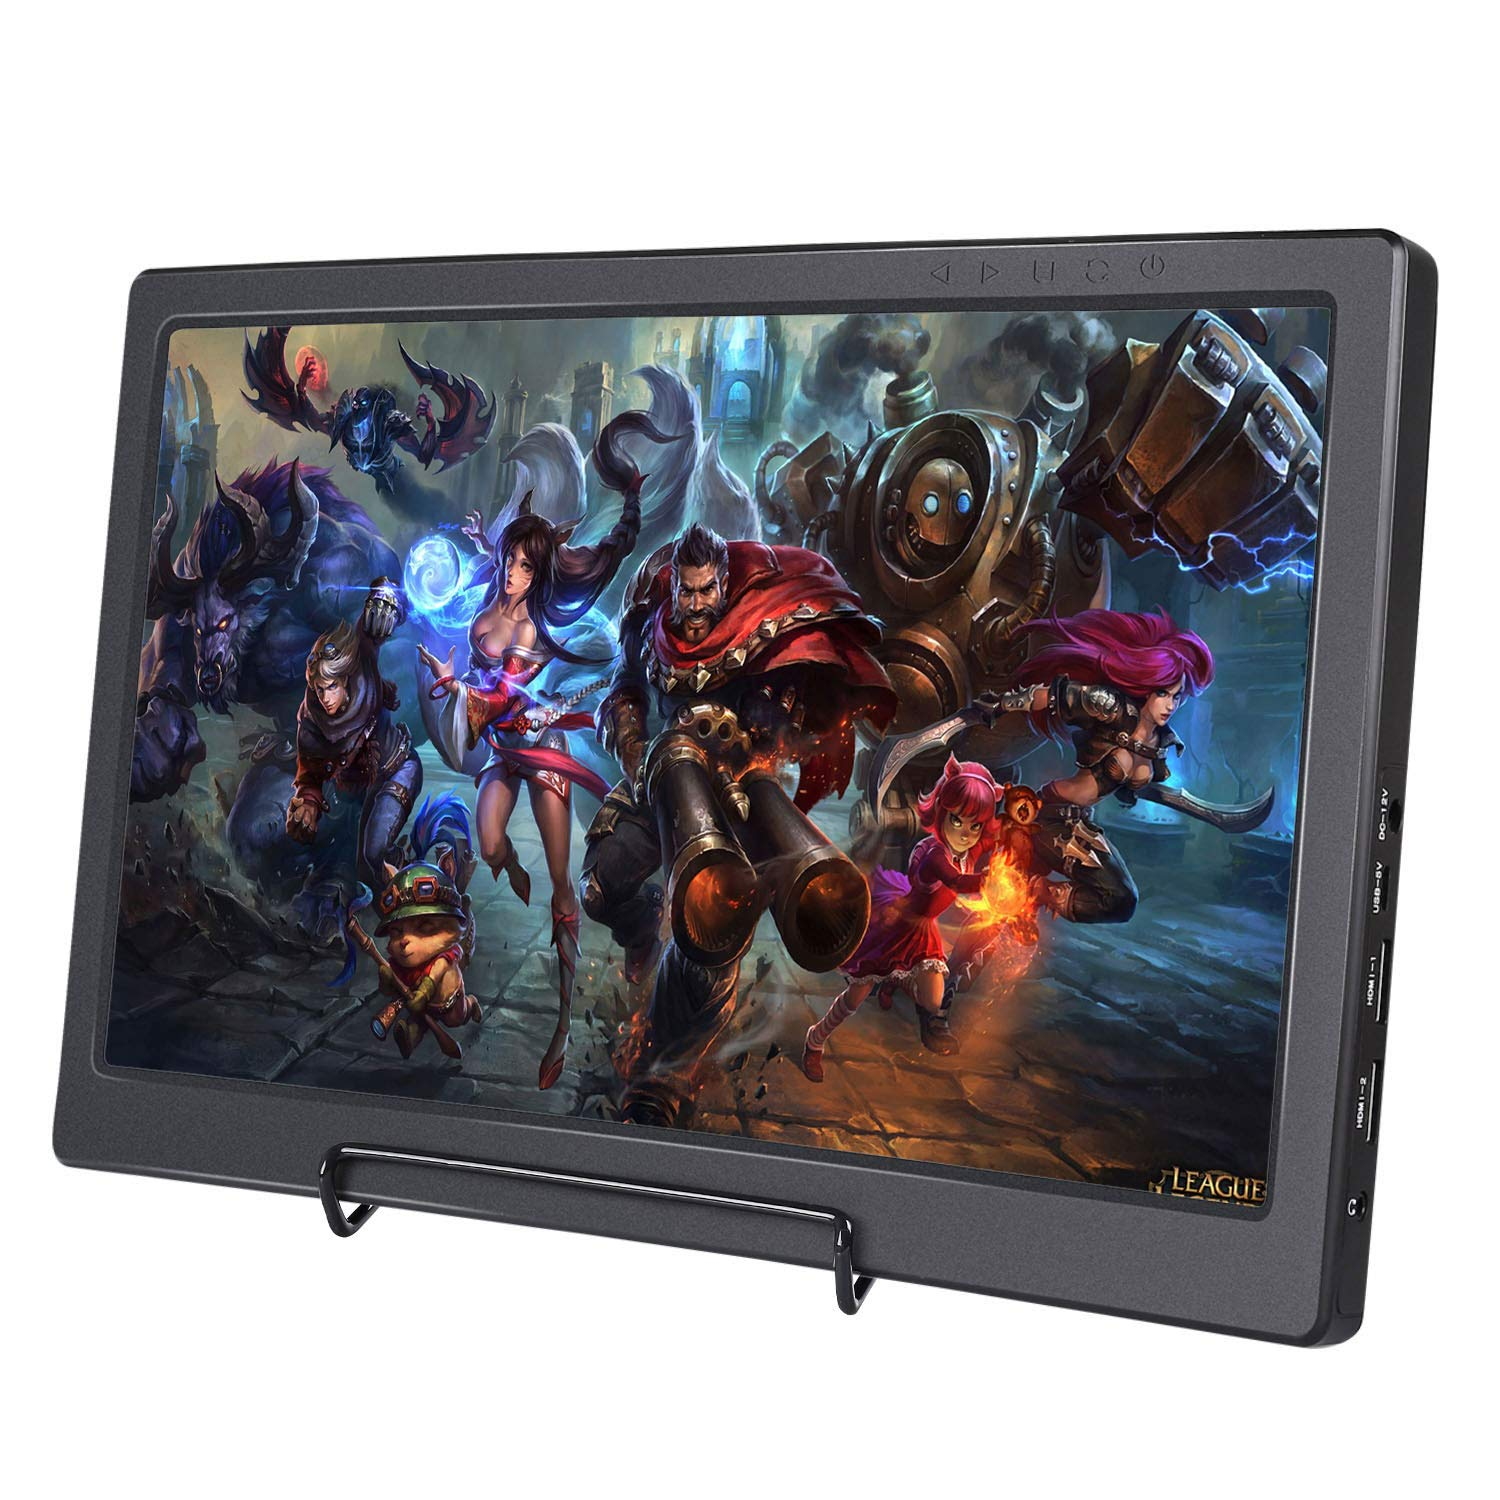 SunFounder Raspberry Pi Display 13.3 Inch IPS Portable 2 HDMI Monitor 1920×1080 Gaming Monitor for Ps4 Raspberry Pi WiiU Xbox 360 Windows 7 8 10